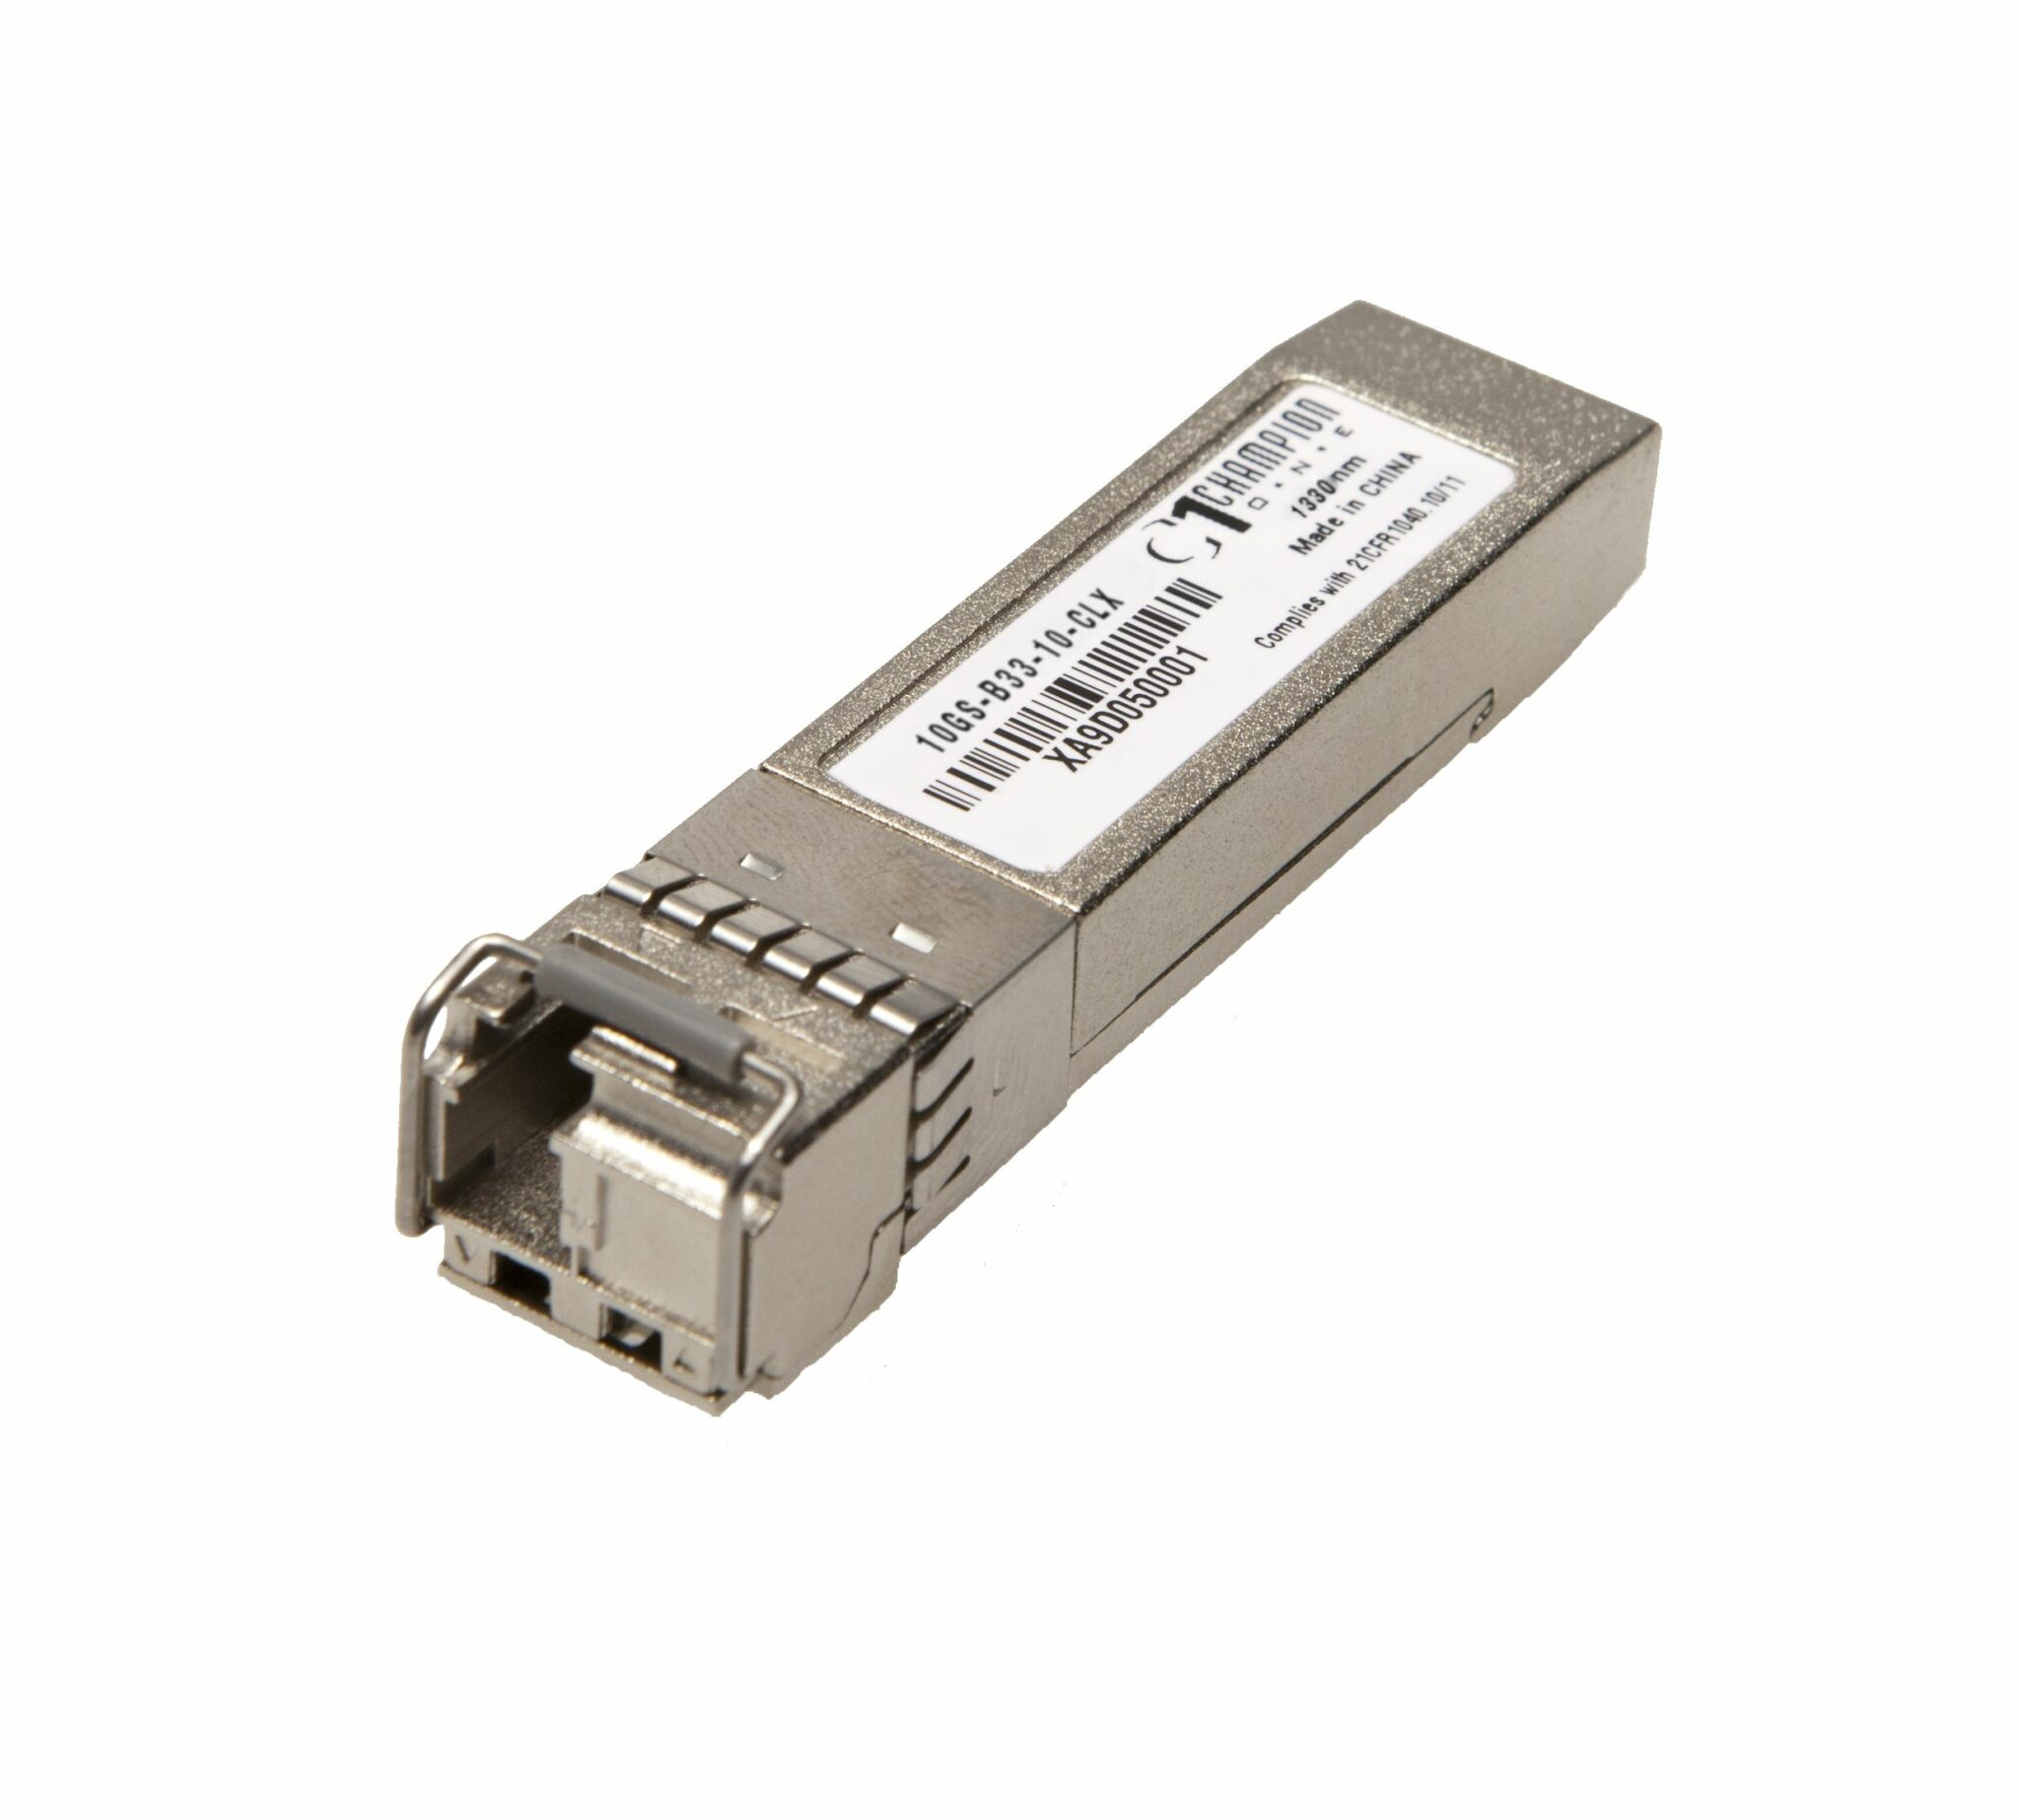 SFP+ SF 10GBase-LR 1330nm 10km, Calix compatible